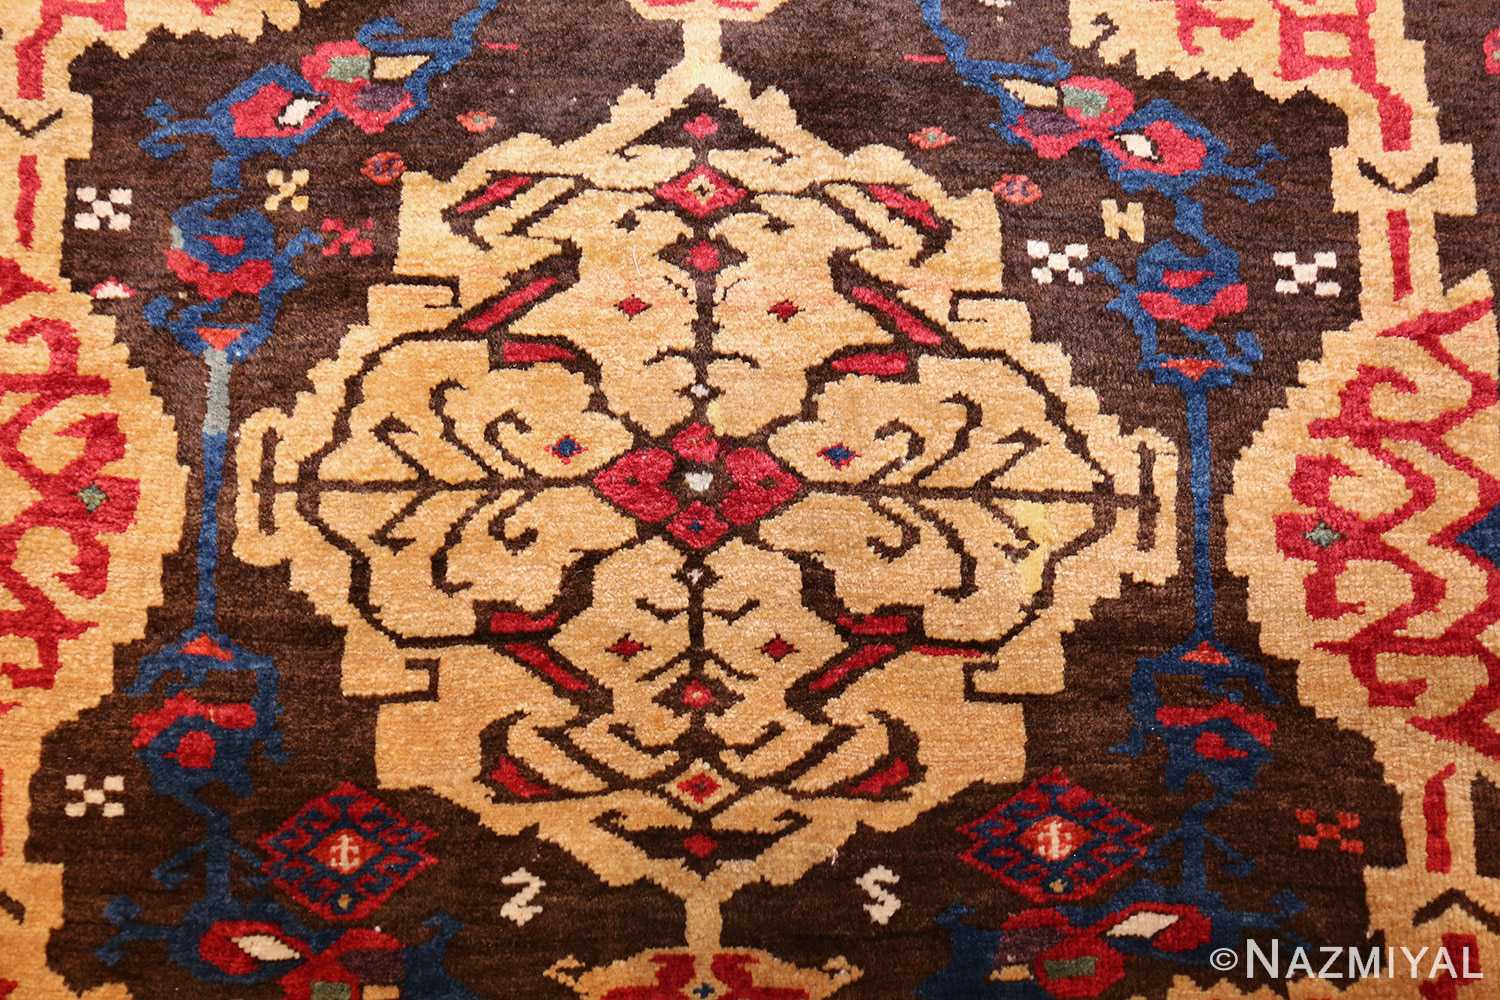 18th century turkish rug from james ballard 47373 medallion Nazmiyal